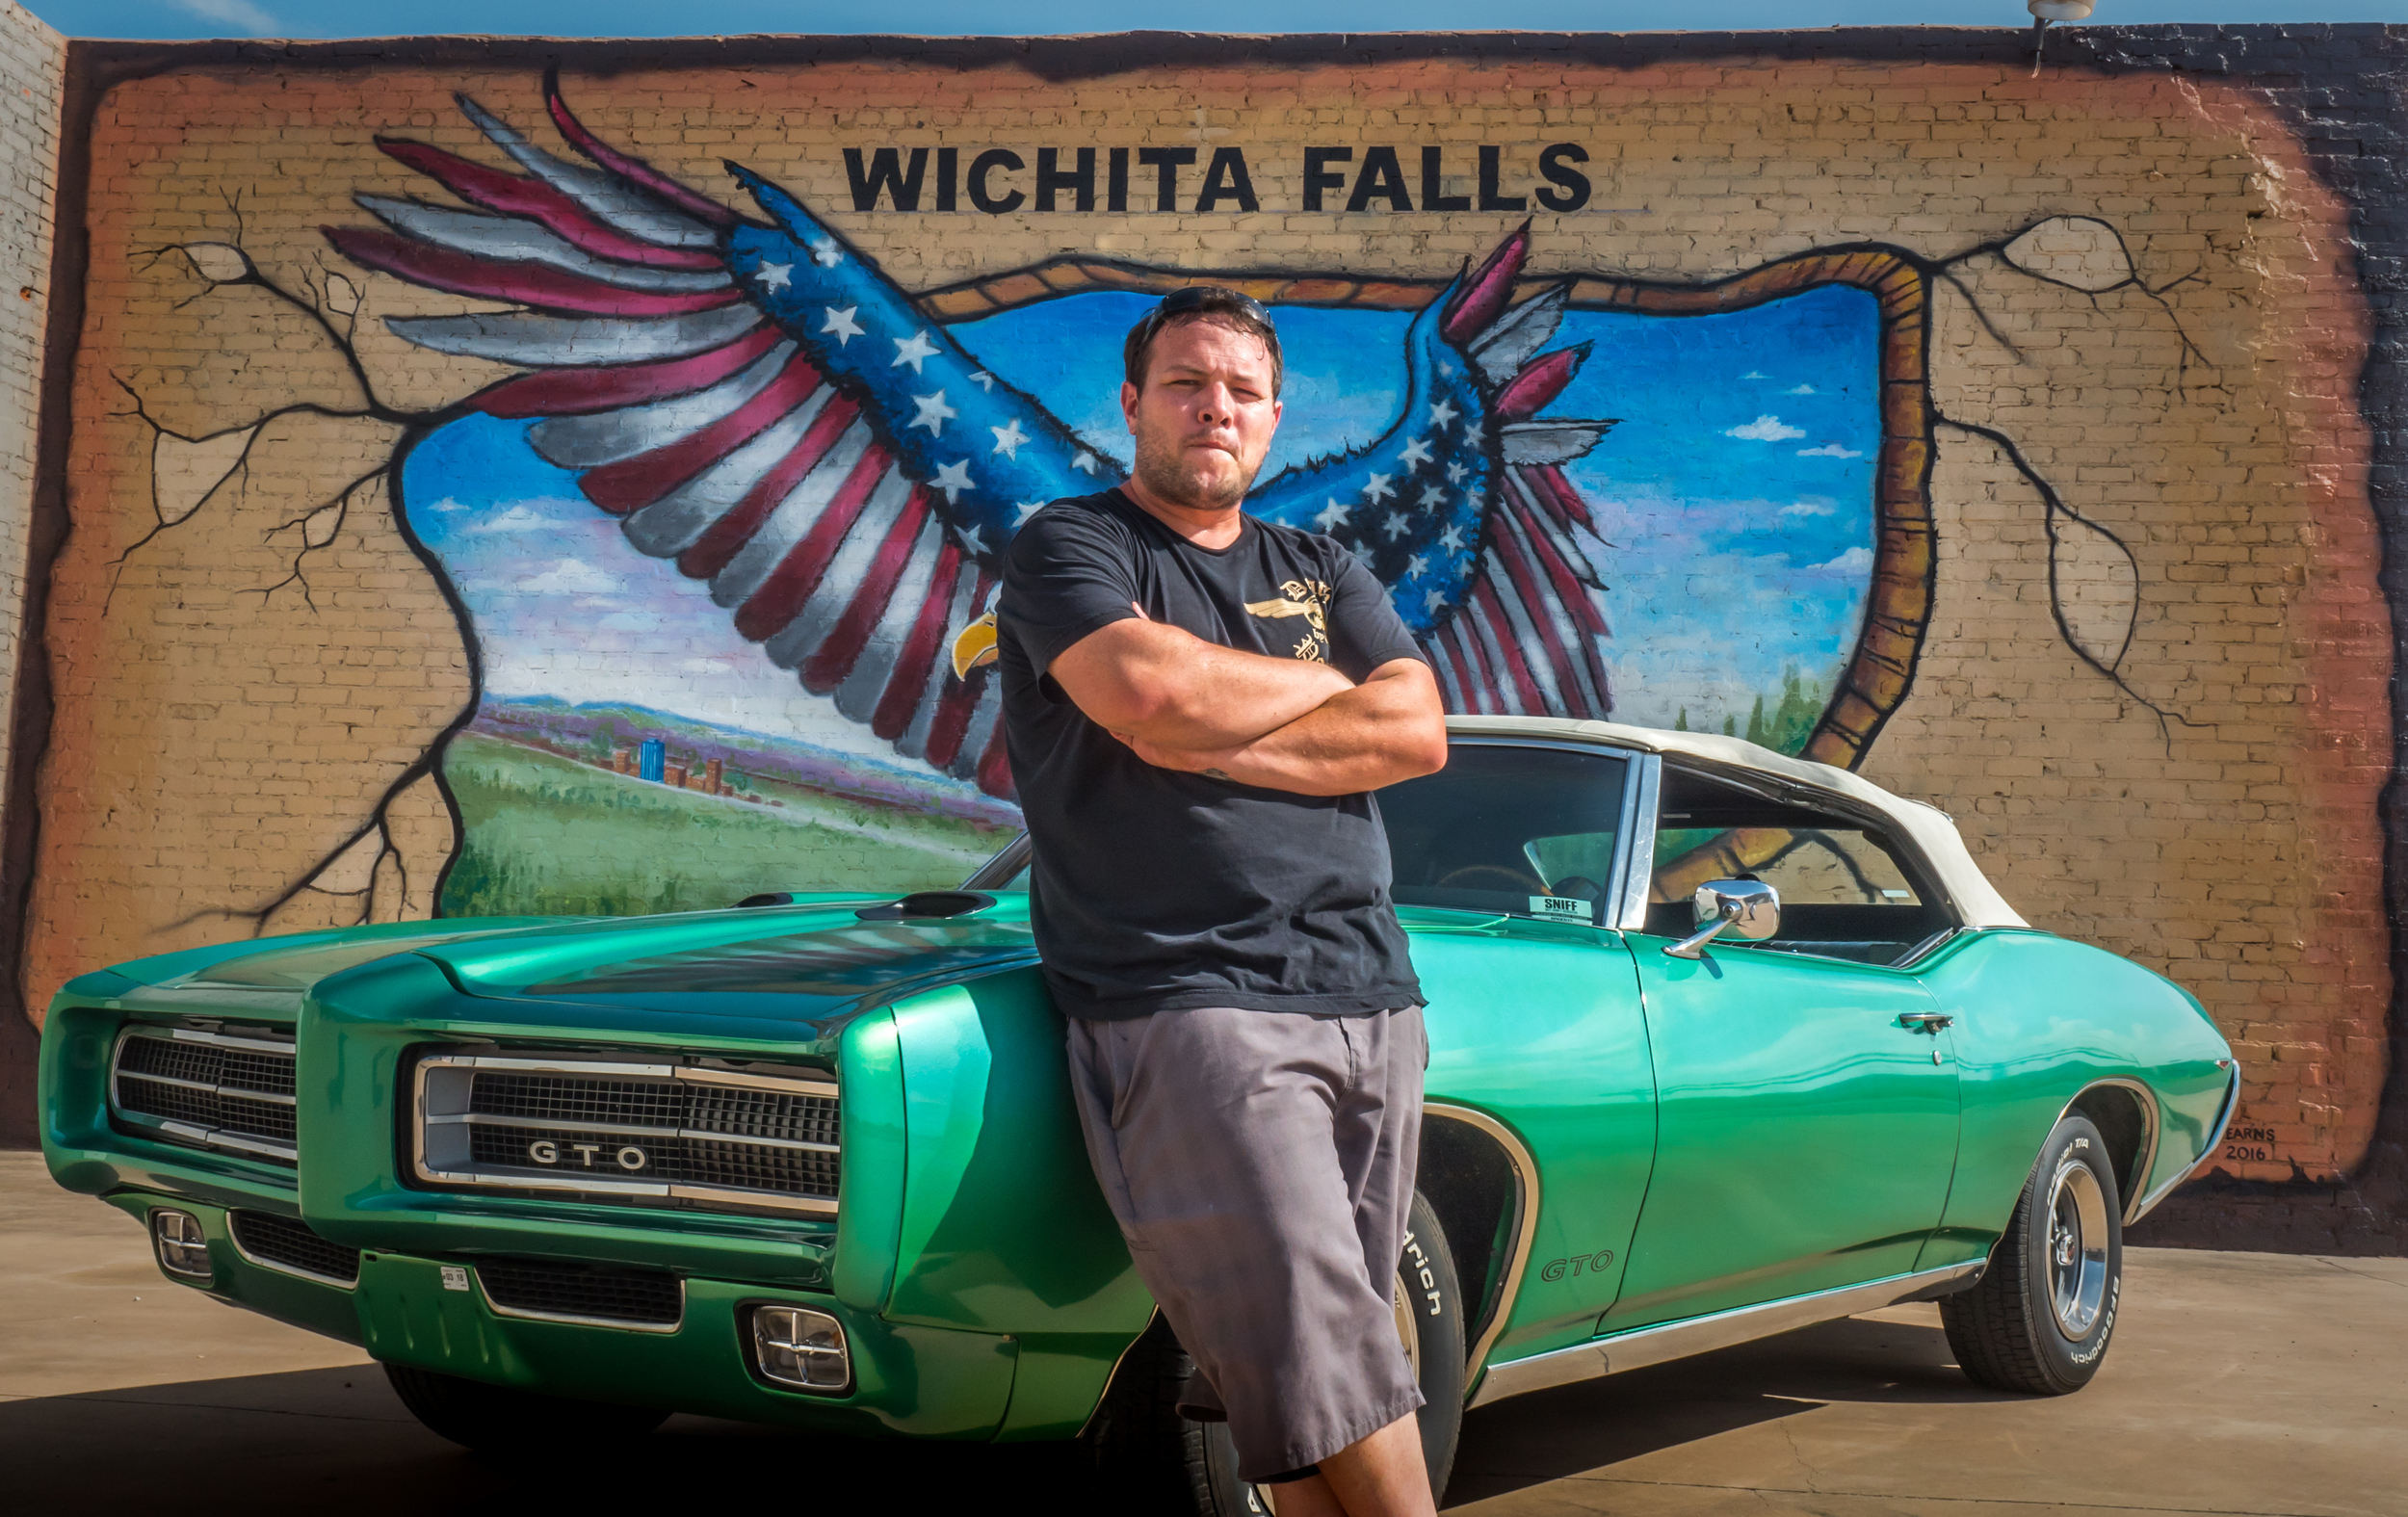 Mr. Brett Humpert with his 1971 GTO. Wall mural by Mr. Ralph Stearns. Downtown Wichita Falls, Texas. ©SimeonHendrix